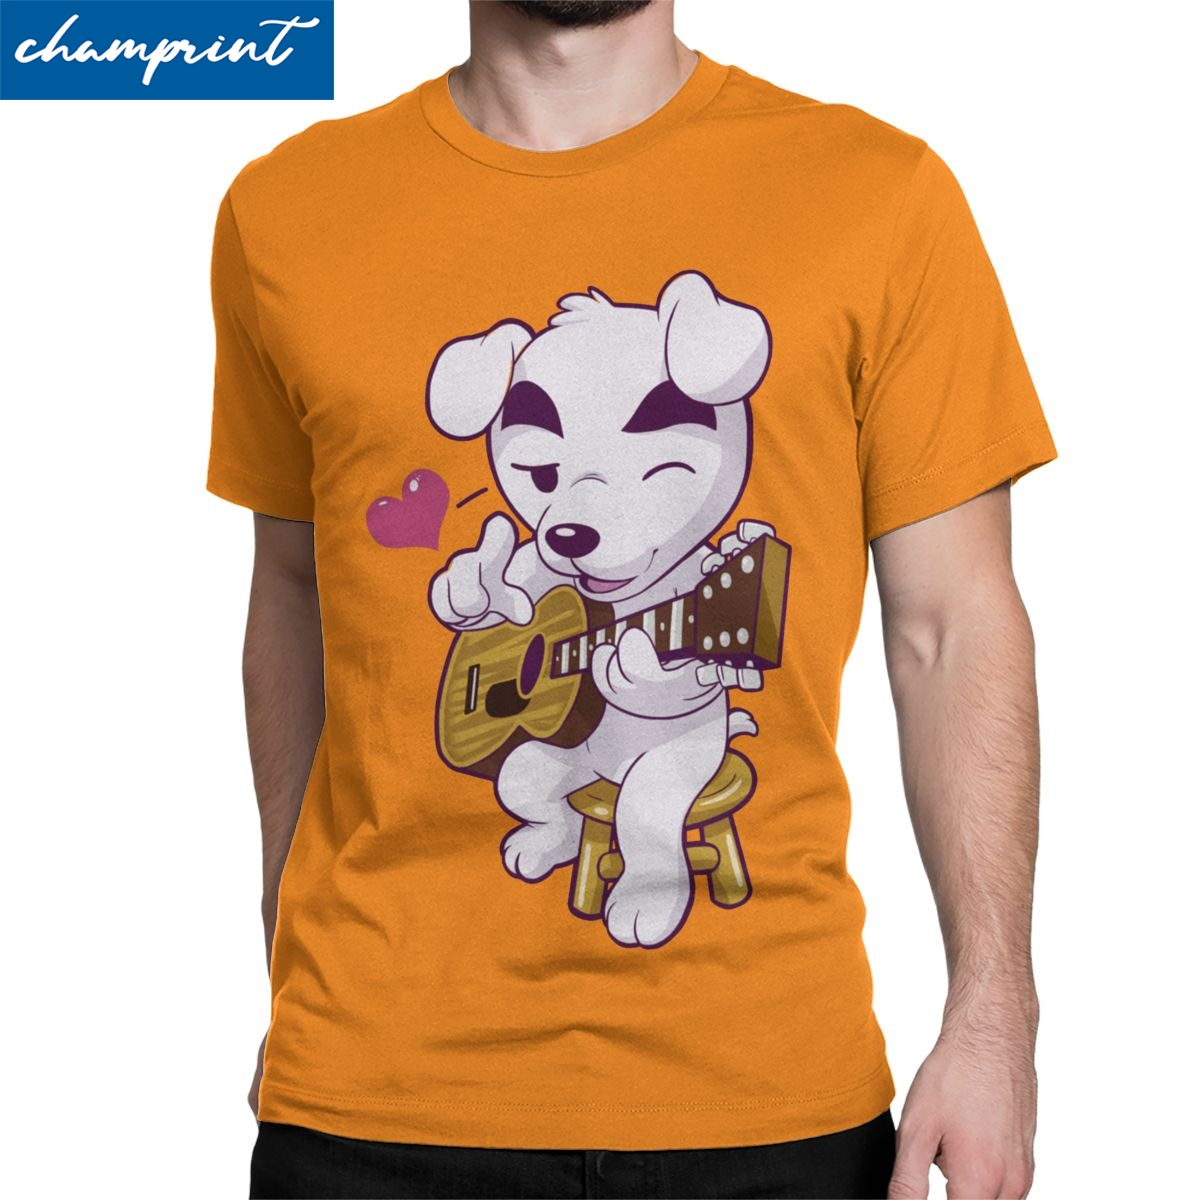 Men T-Shirt This Song Is For You Funny Pure Cotton Tee Shirt Animal Crossing Video Games T Shirts O Neck Clothing Plus Size image